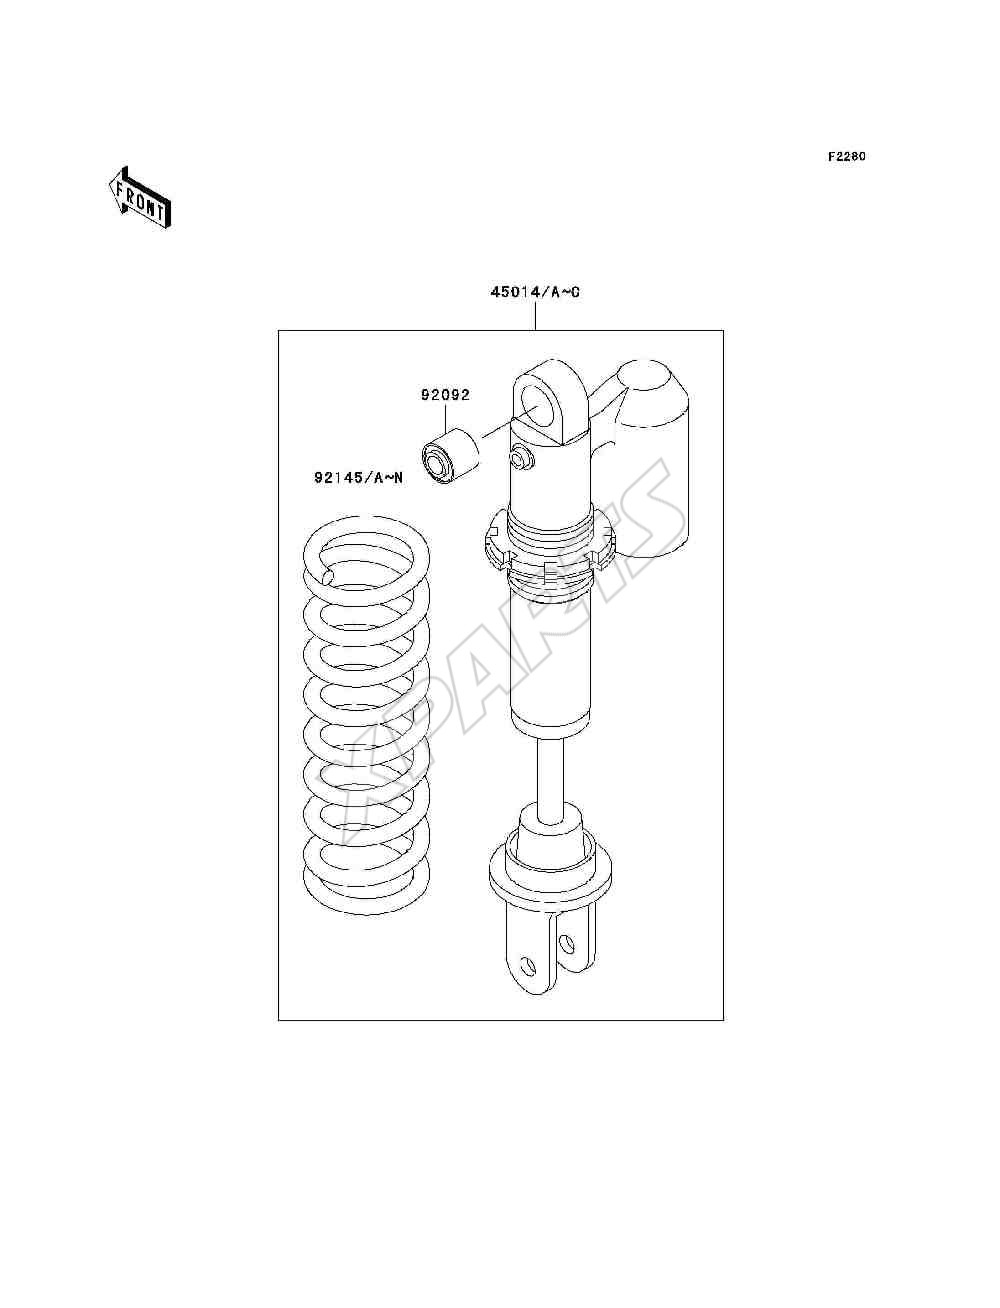 Kubota Rtv 900 Parts Catalog Engine Diagram And Wiring